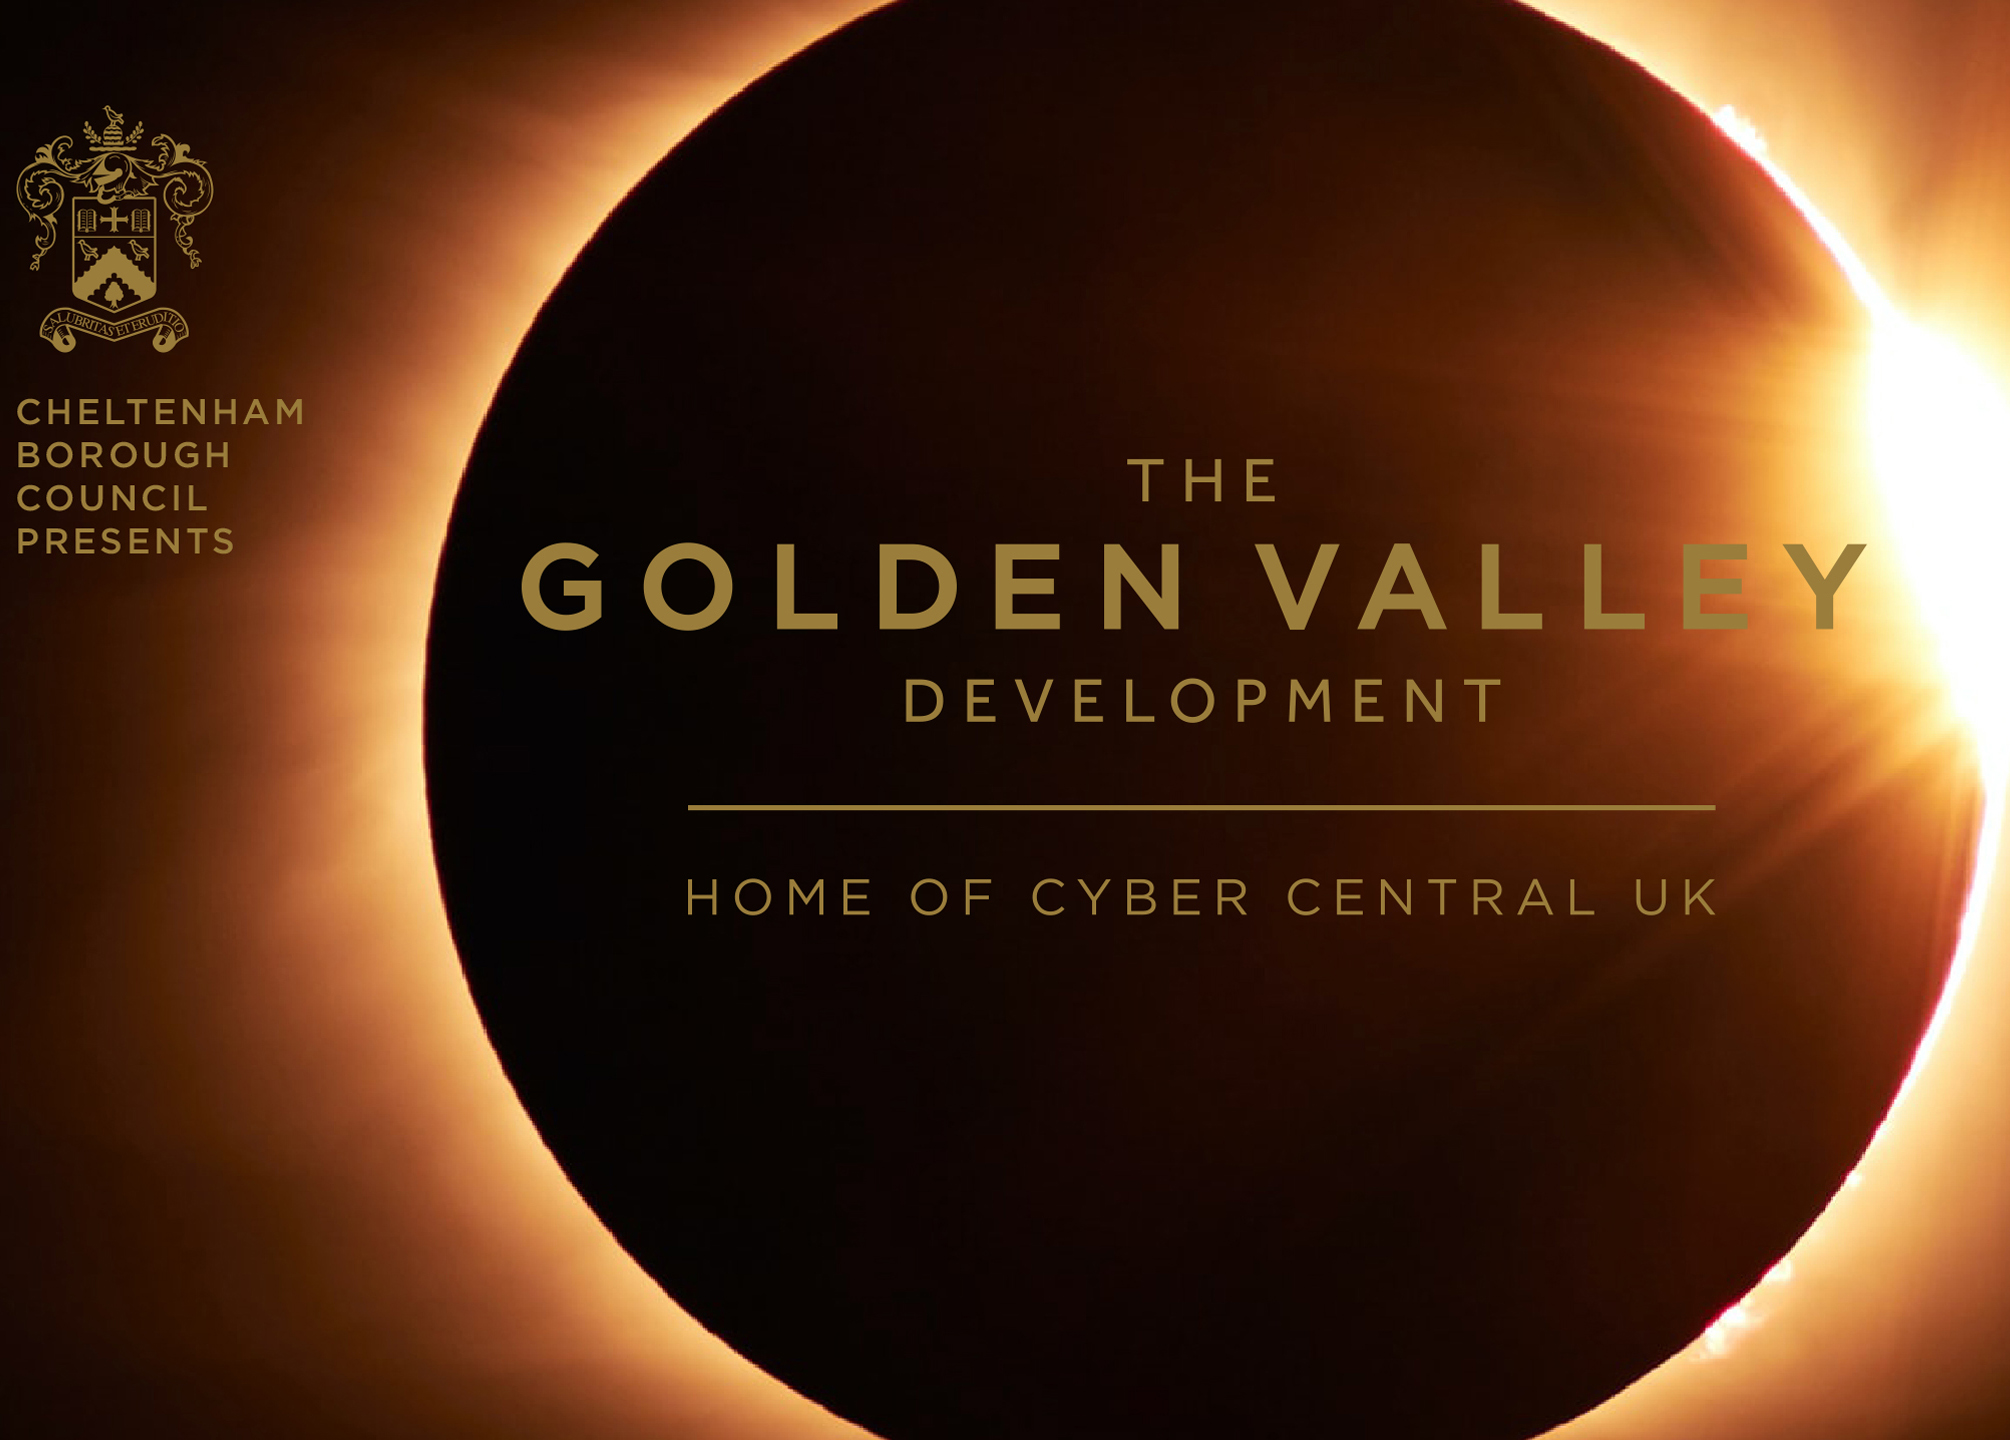 Cheltenham Borough Council launches search for partner to deliver world-class Golden Valley Development